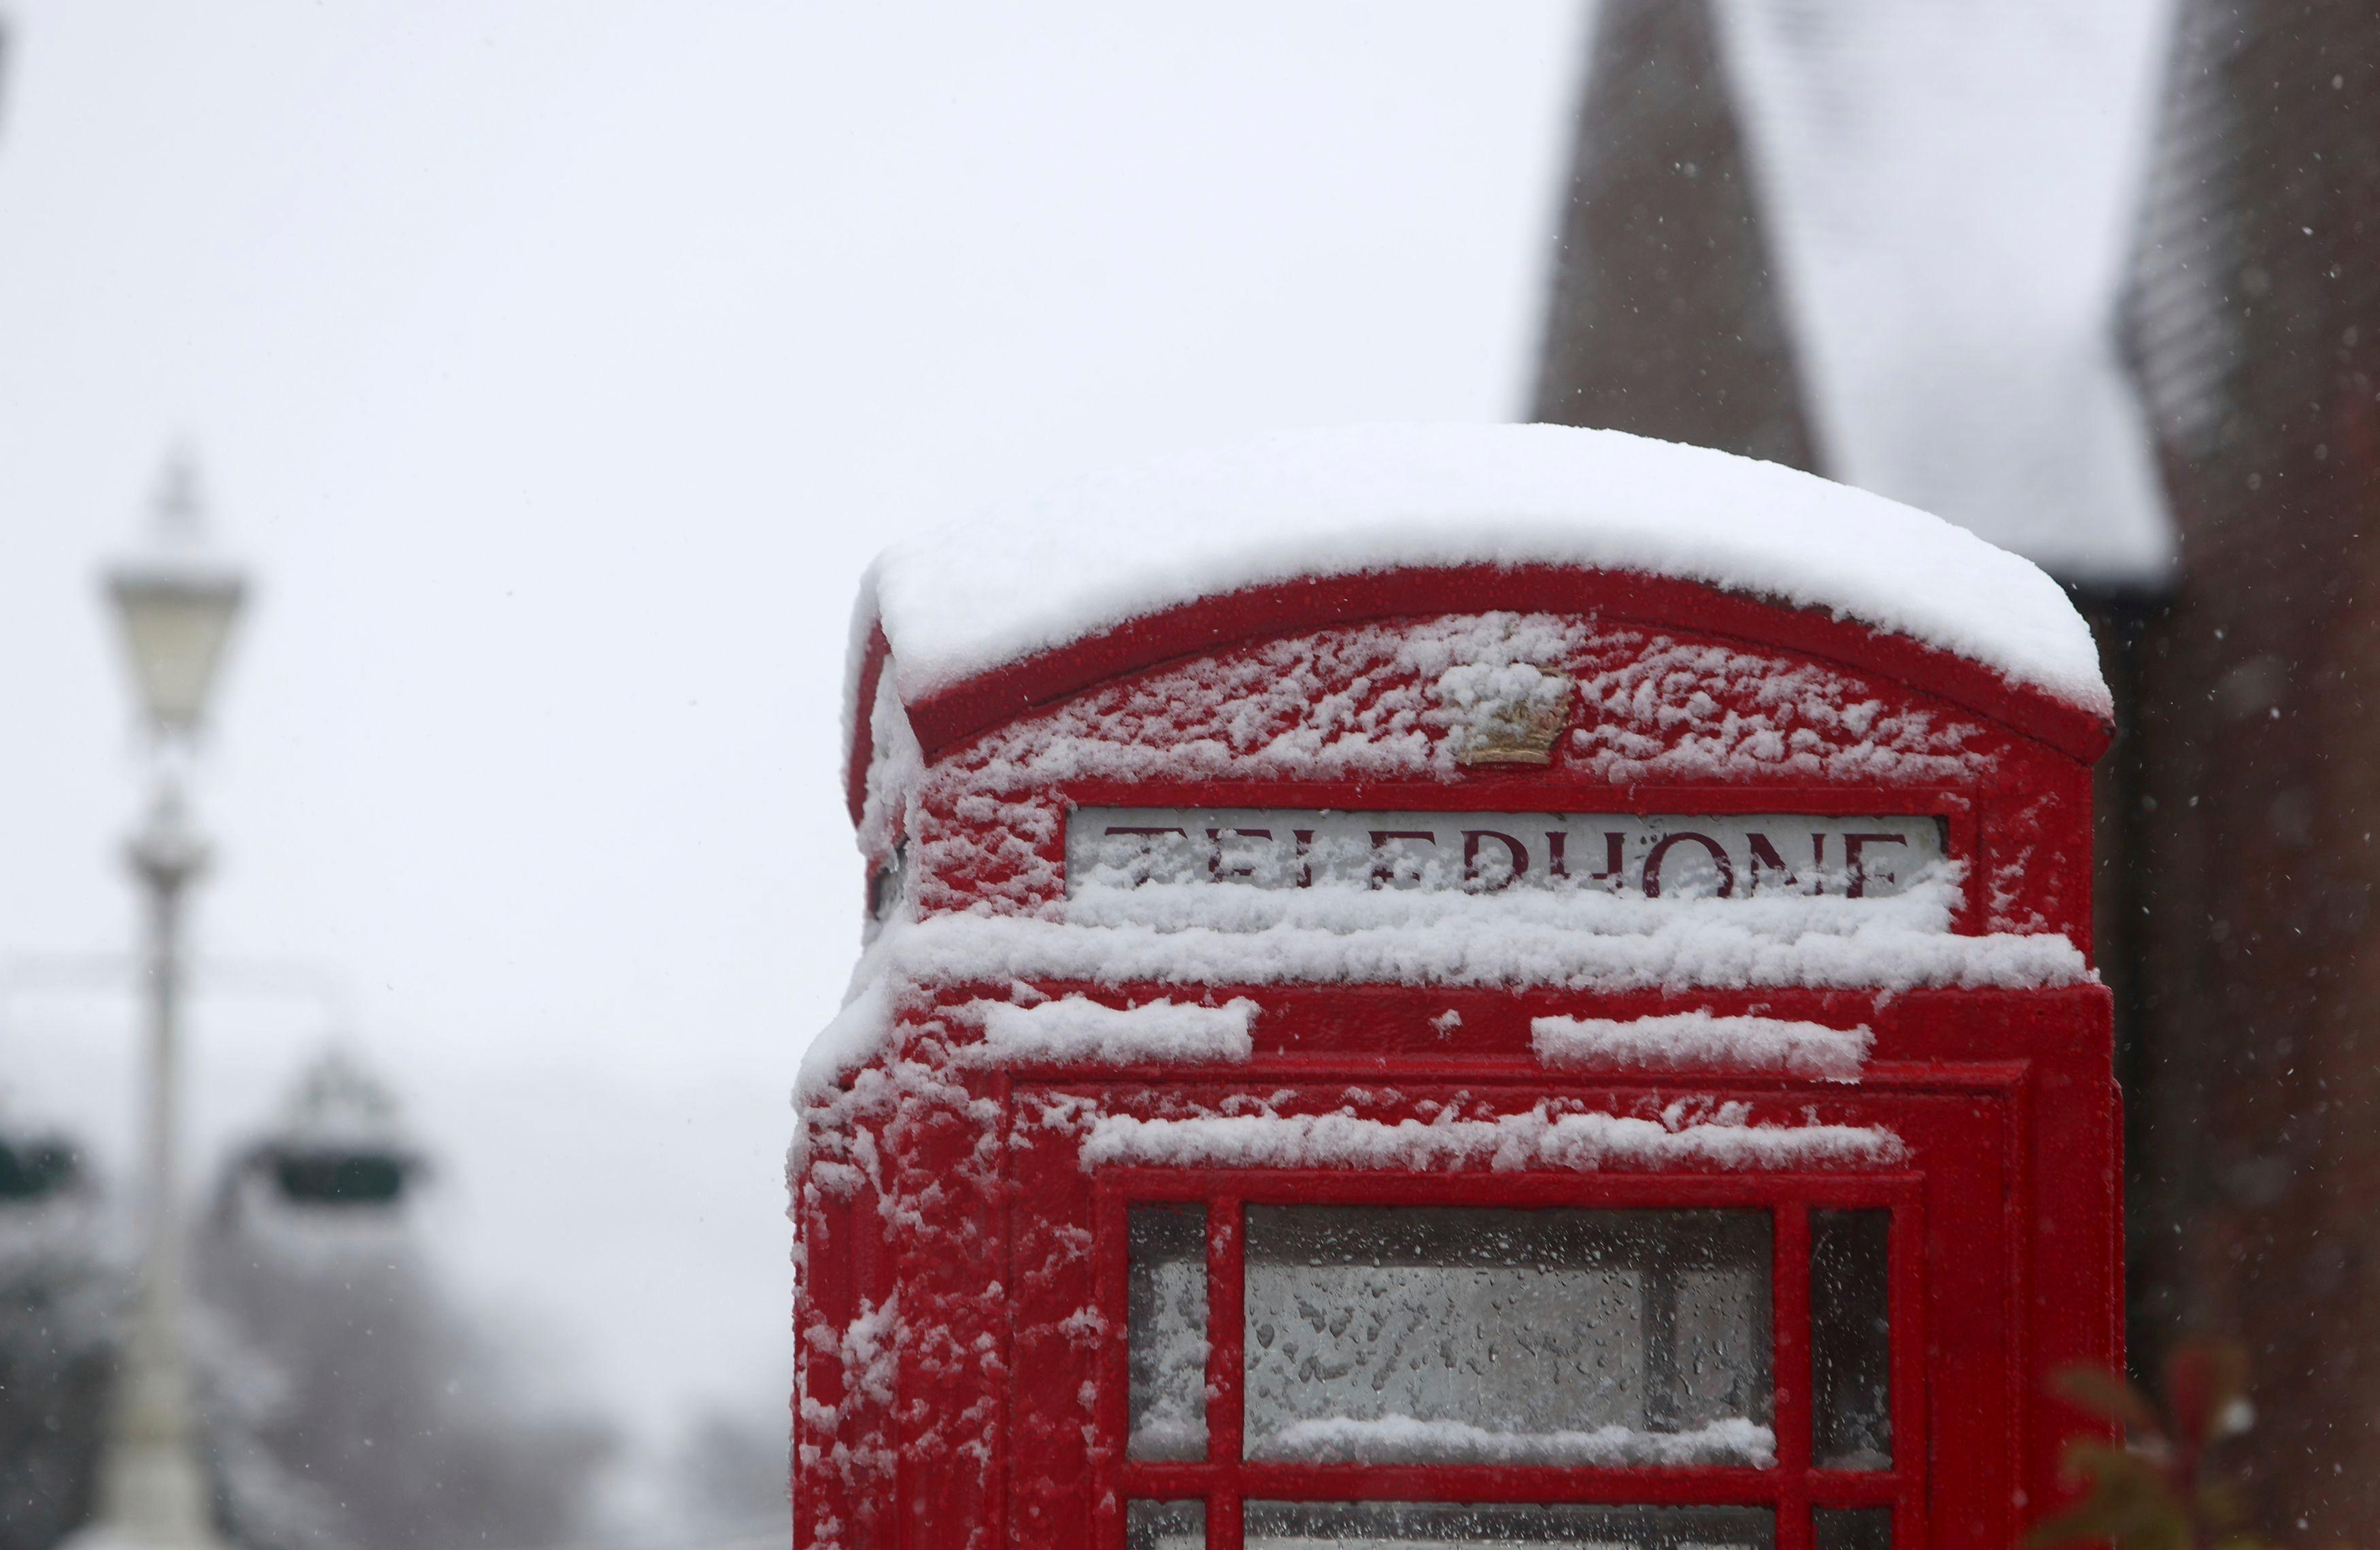 A snow covered phone box in Marlow, England, after heavy snow fell across parts of the UK, Sunday Dec. 10, 2017.  Snow is causing travel disruptions across central England and northern Wales, grounding some flights and shutting down roads. (Steve Parsons/PA via AP)